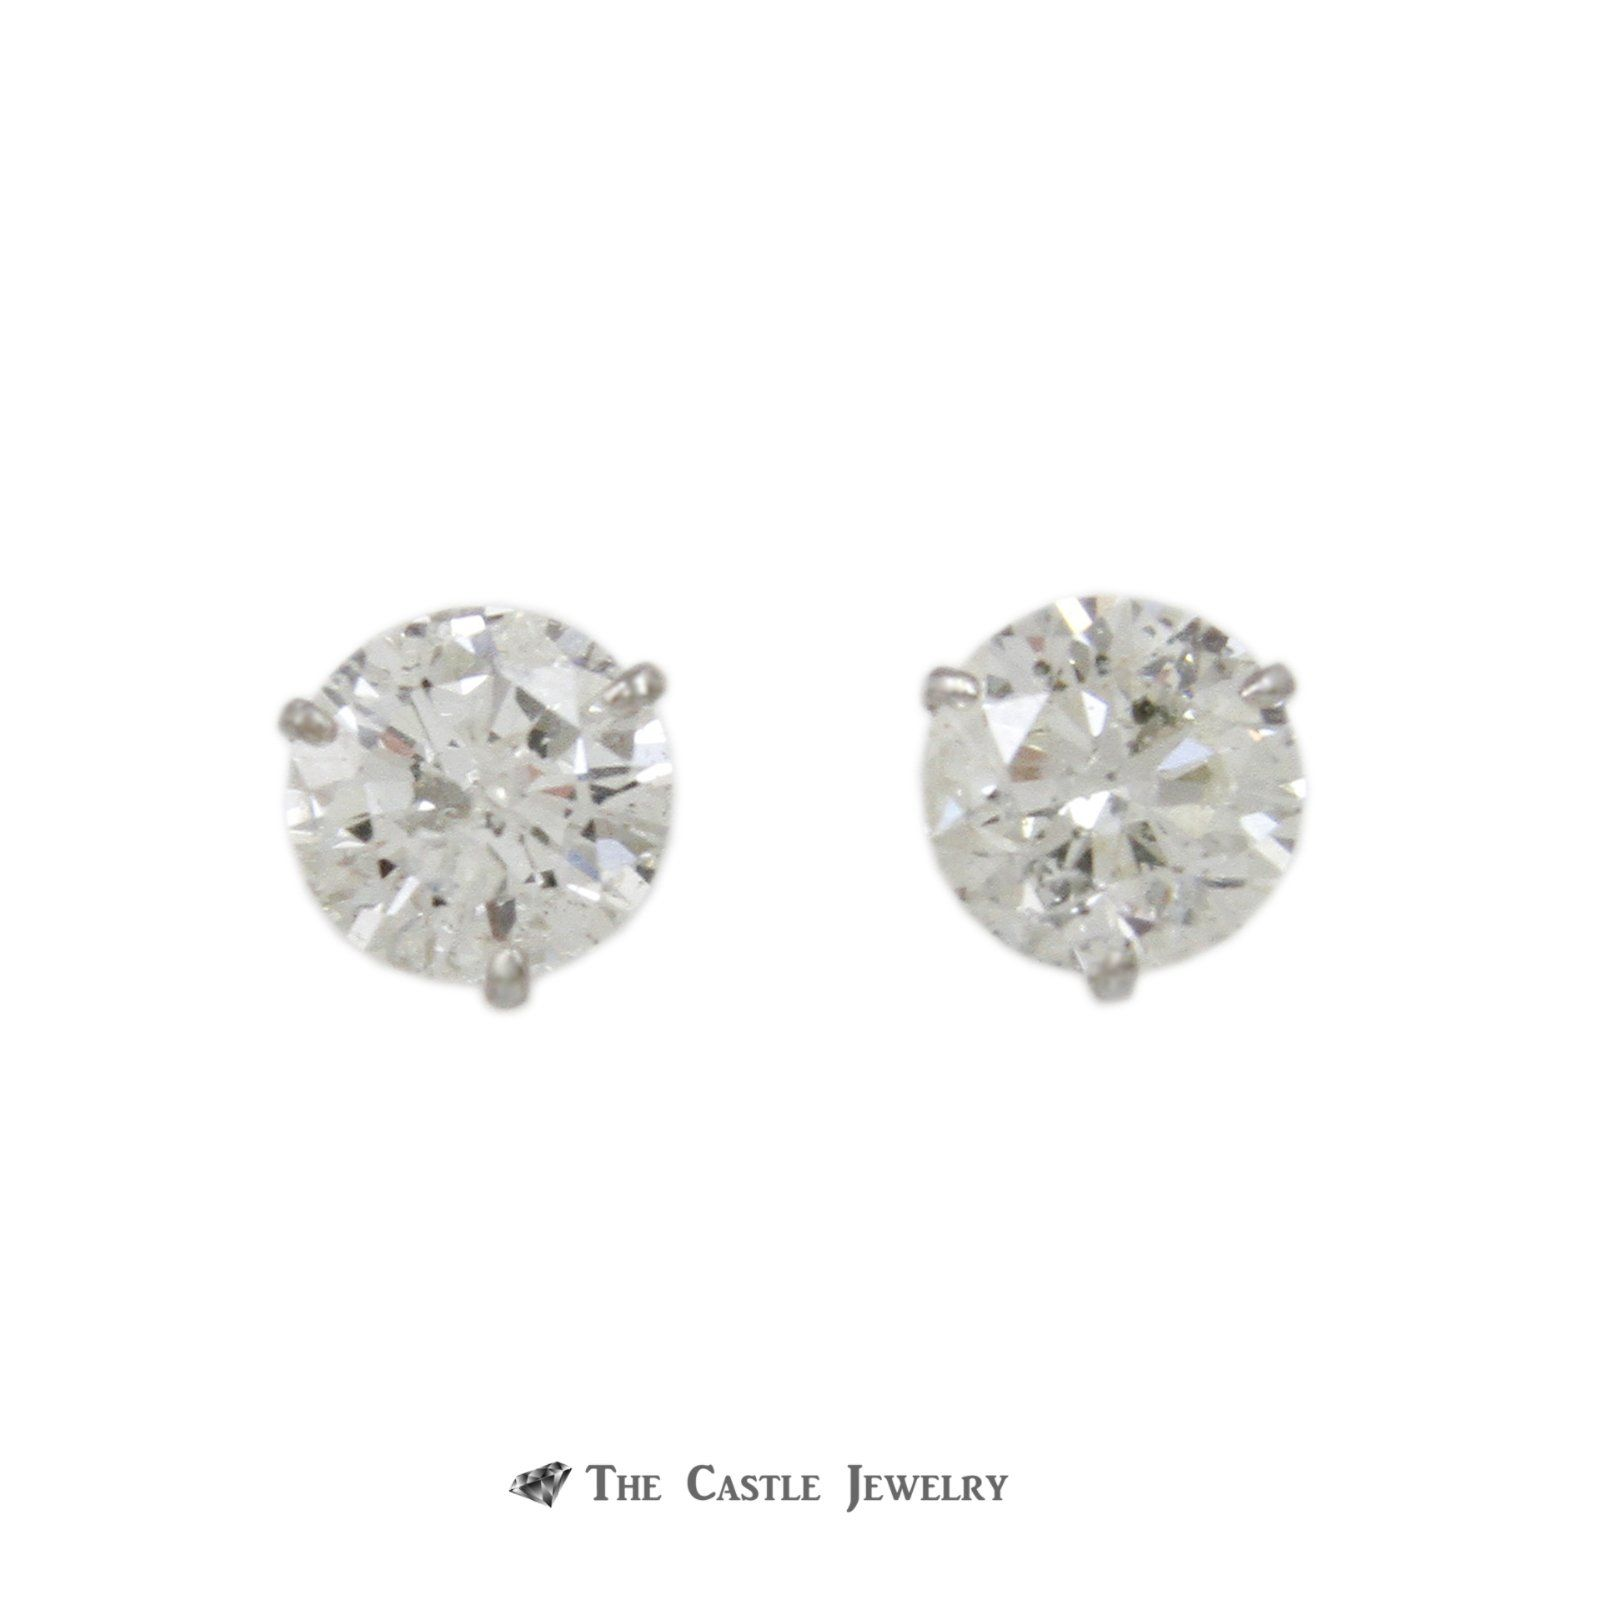 plat color style s product prong clarity in cts earrings stud brilliant the diamond h kwiat studs round jewelry signature